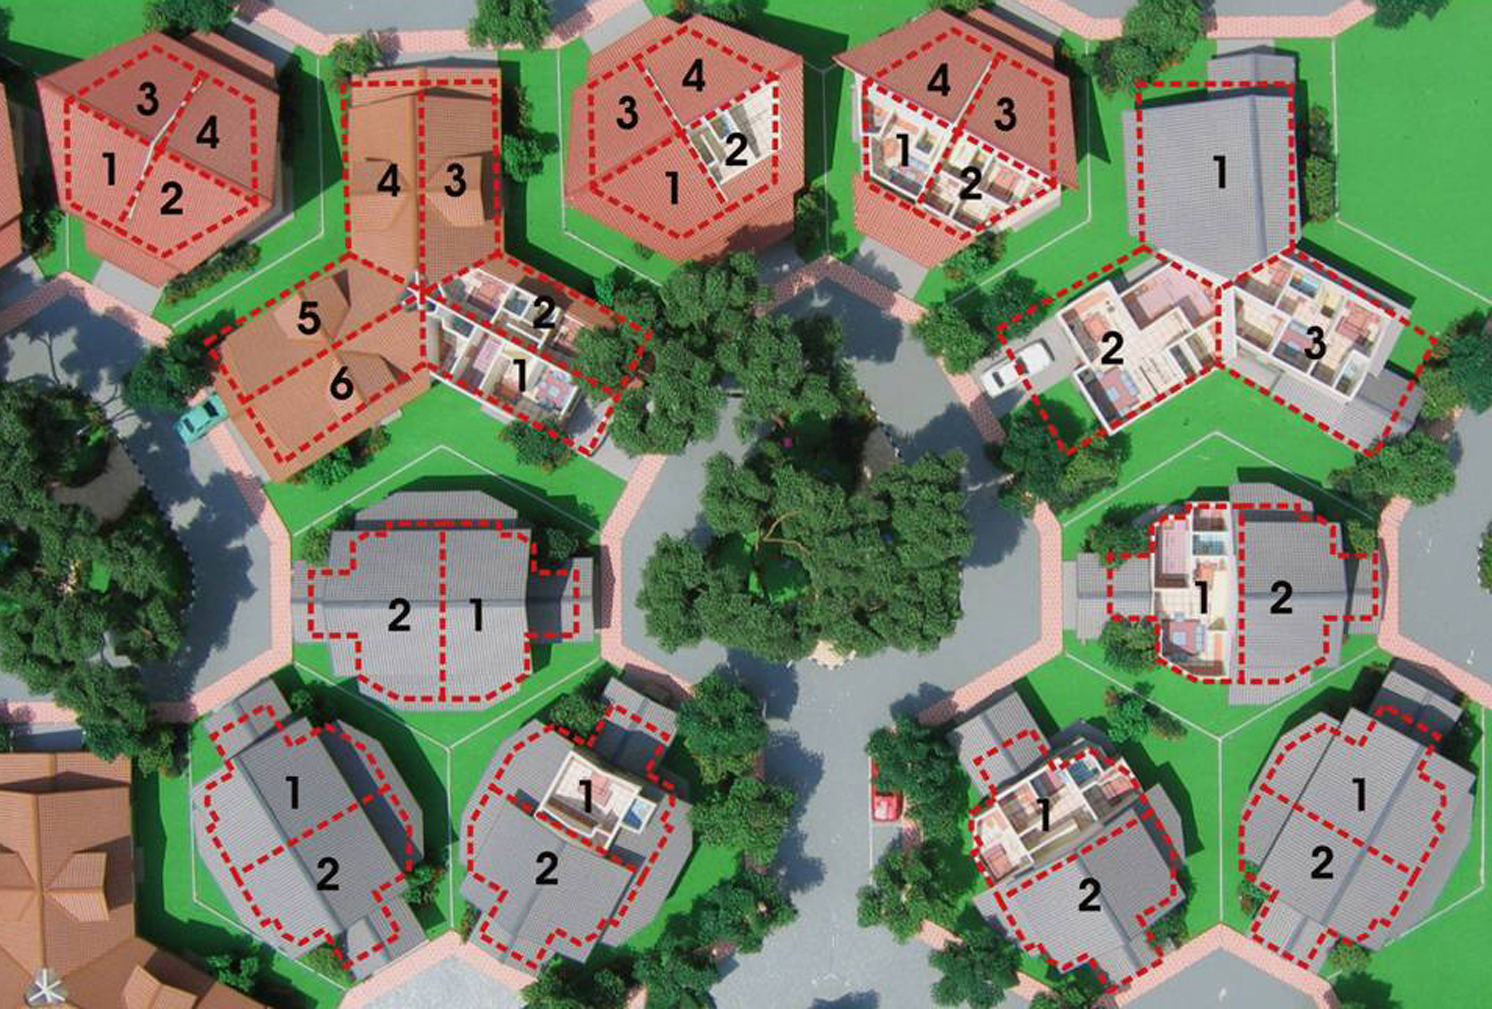 Cluster Housing Saves Open Space - Useful Community